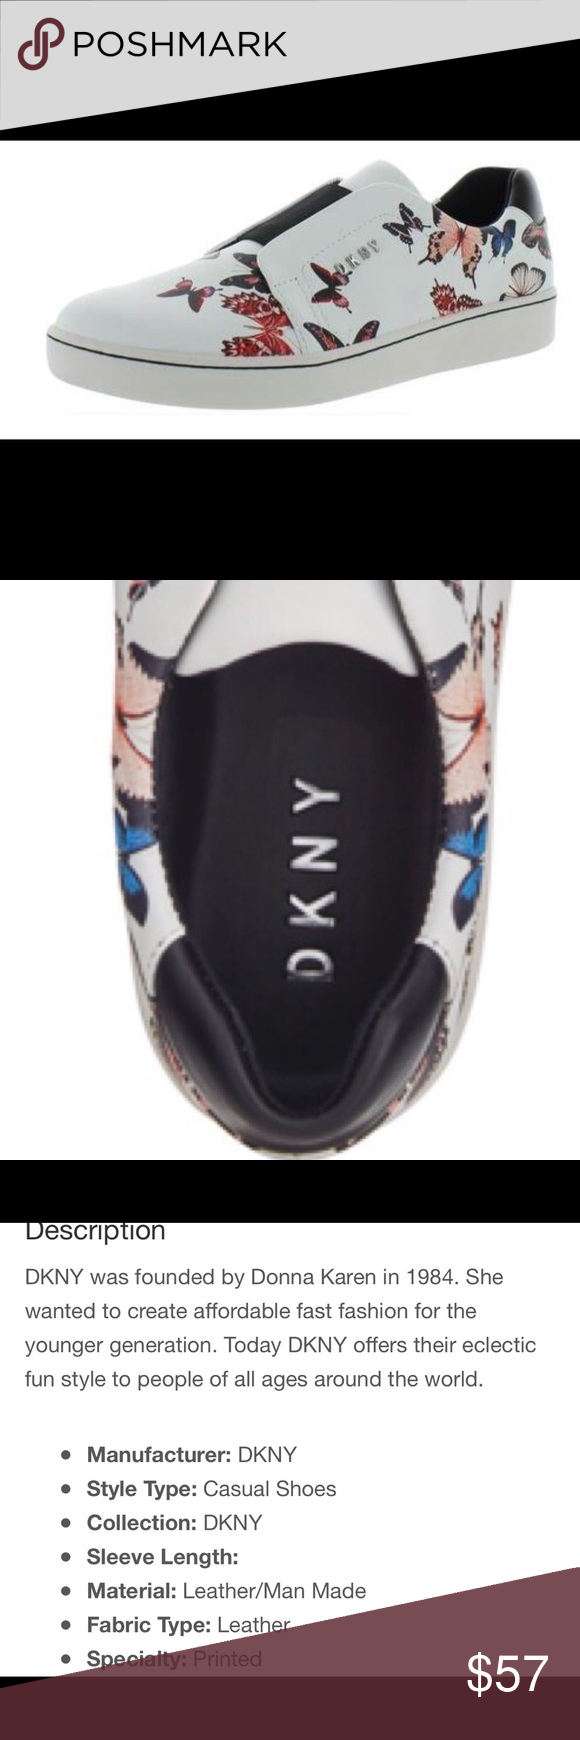 DKNY Leather Butterfly Sneakers   Dkny